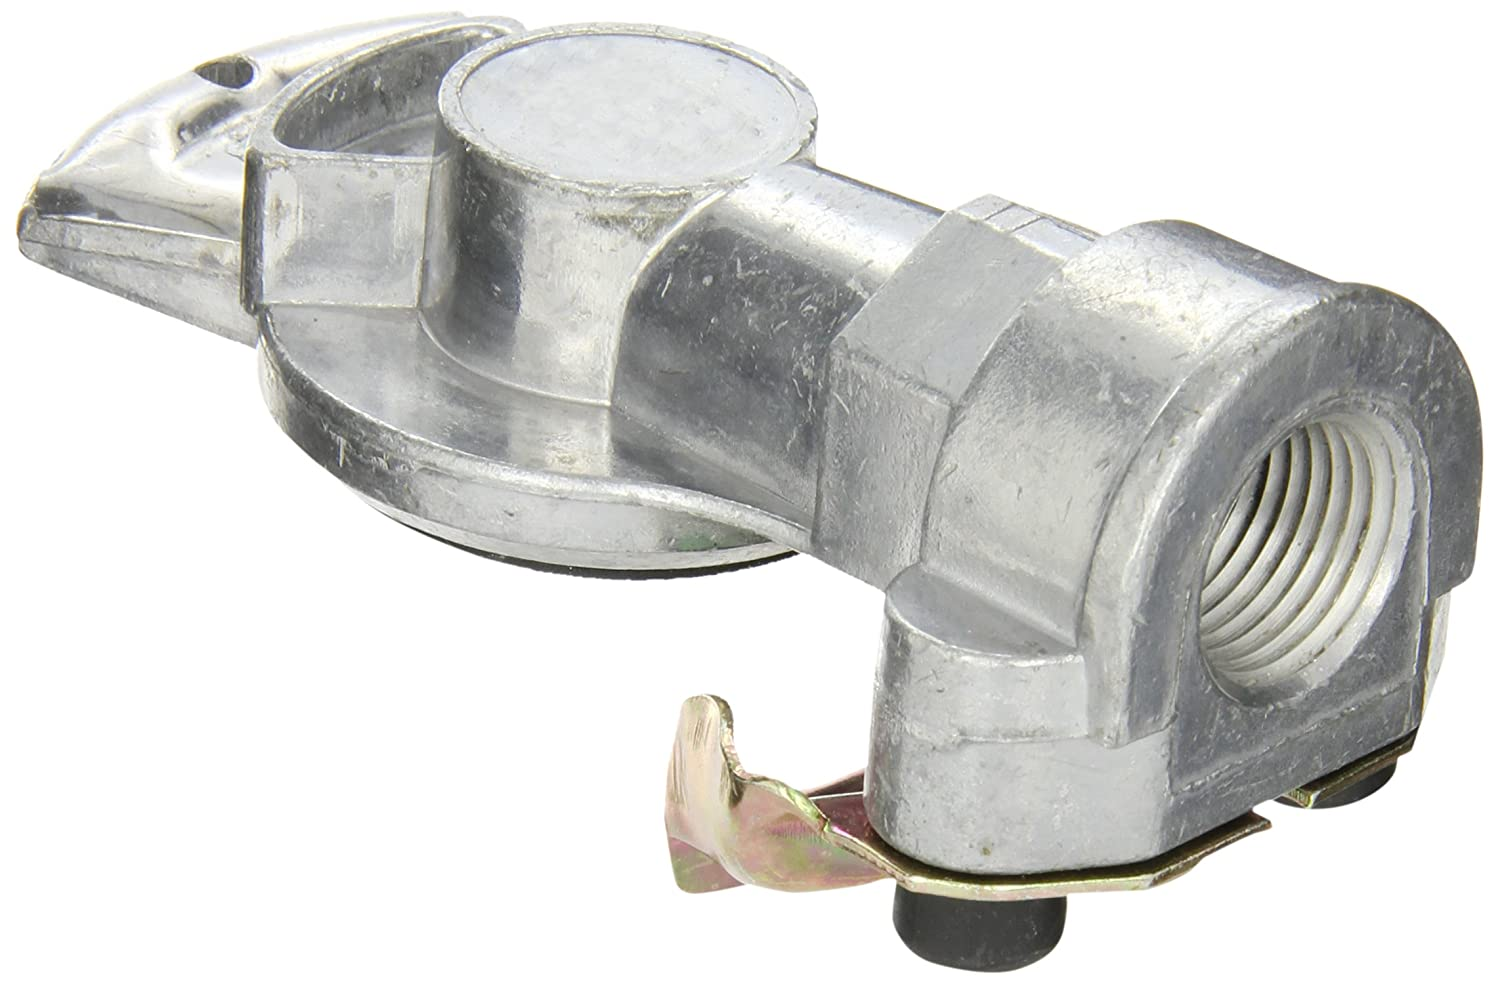 Eaton Weatherhead W76150 Gladhand Universal Coupling, Connects with All Three Styles